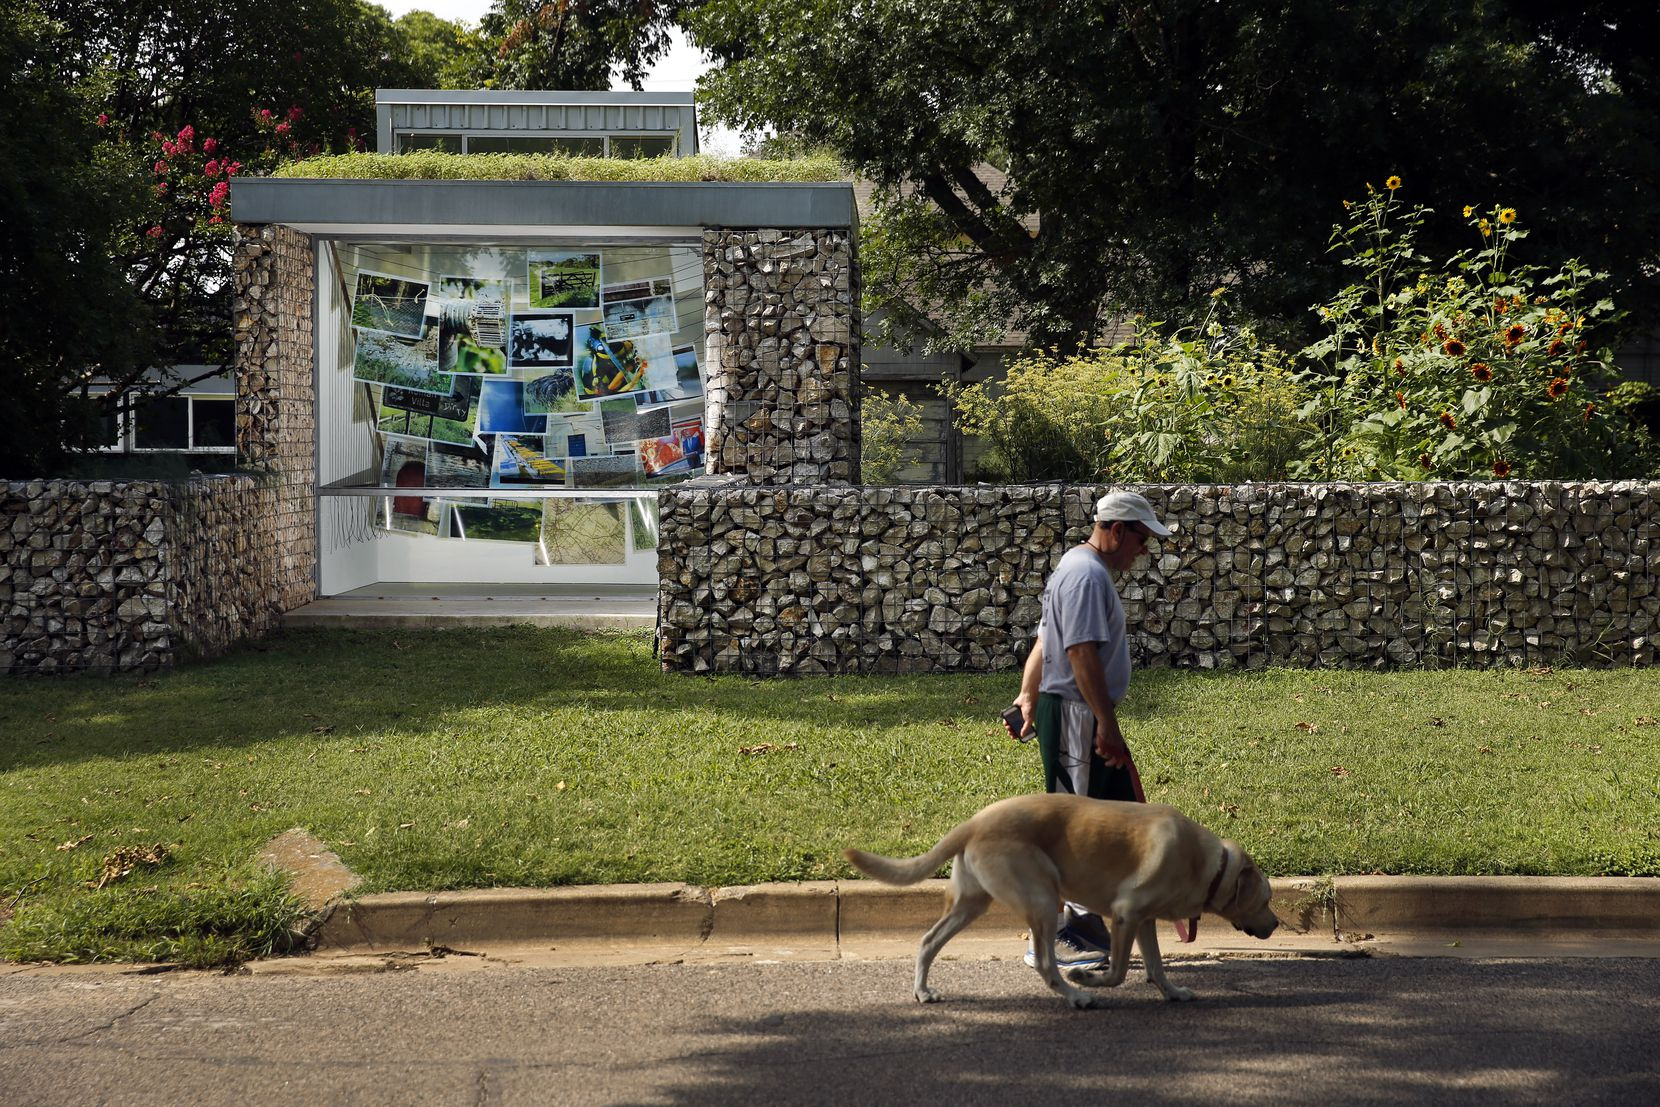 A man walks his dog past the Blind Alley art gallery.